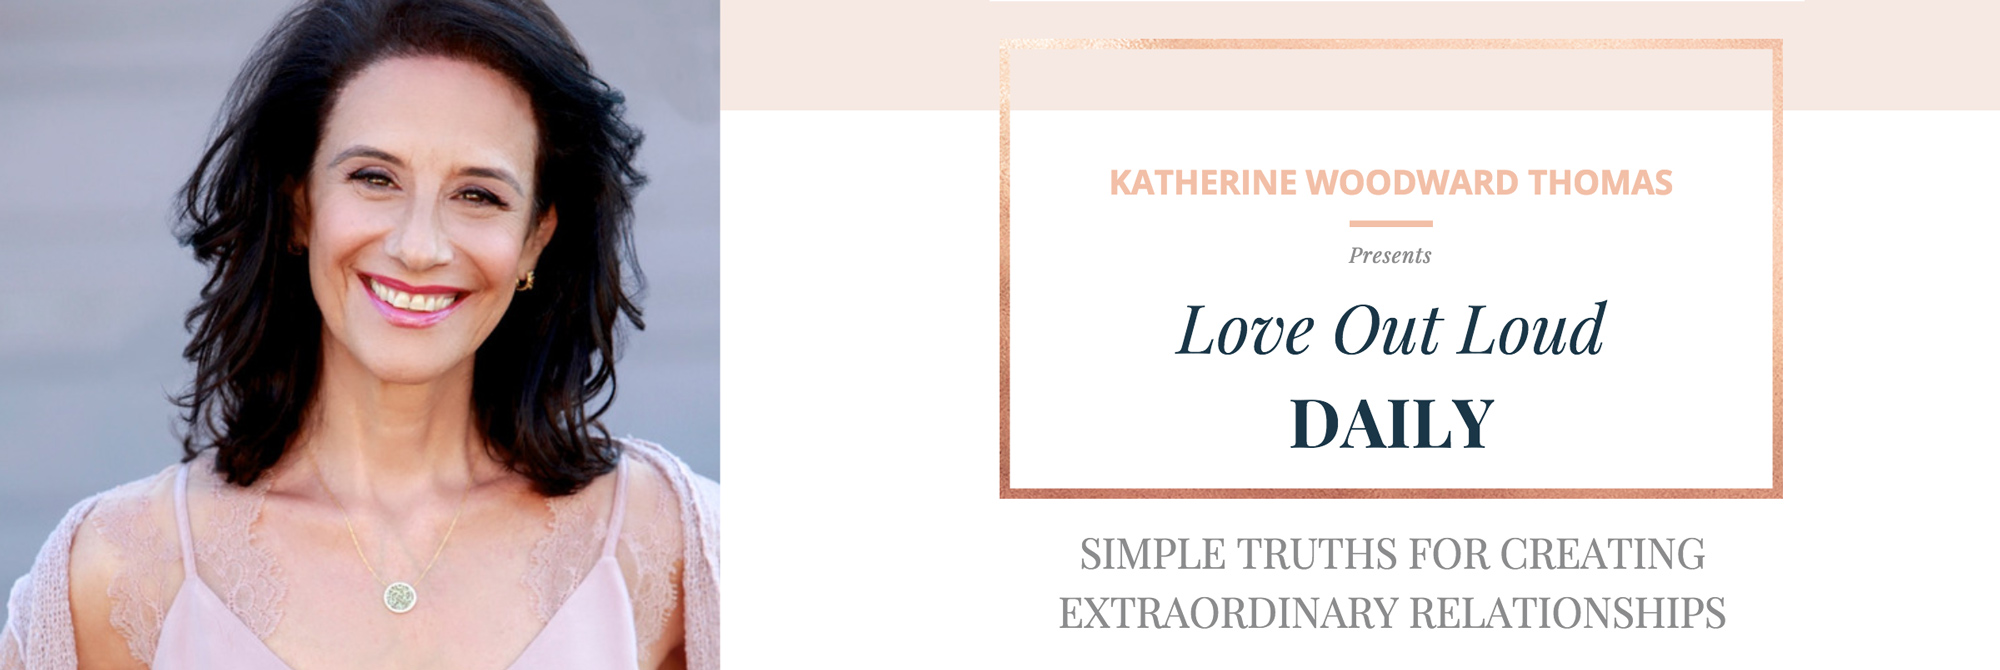 love out loud daily with katherine woodward thomas